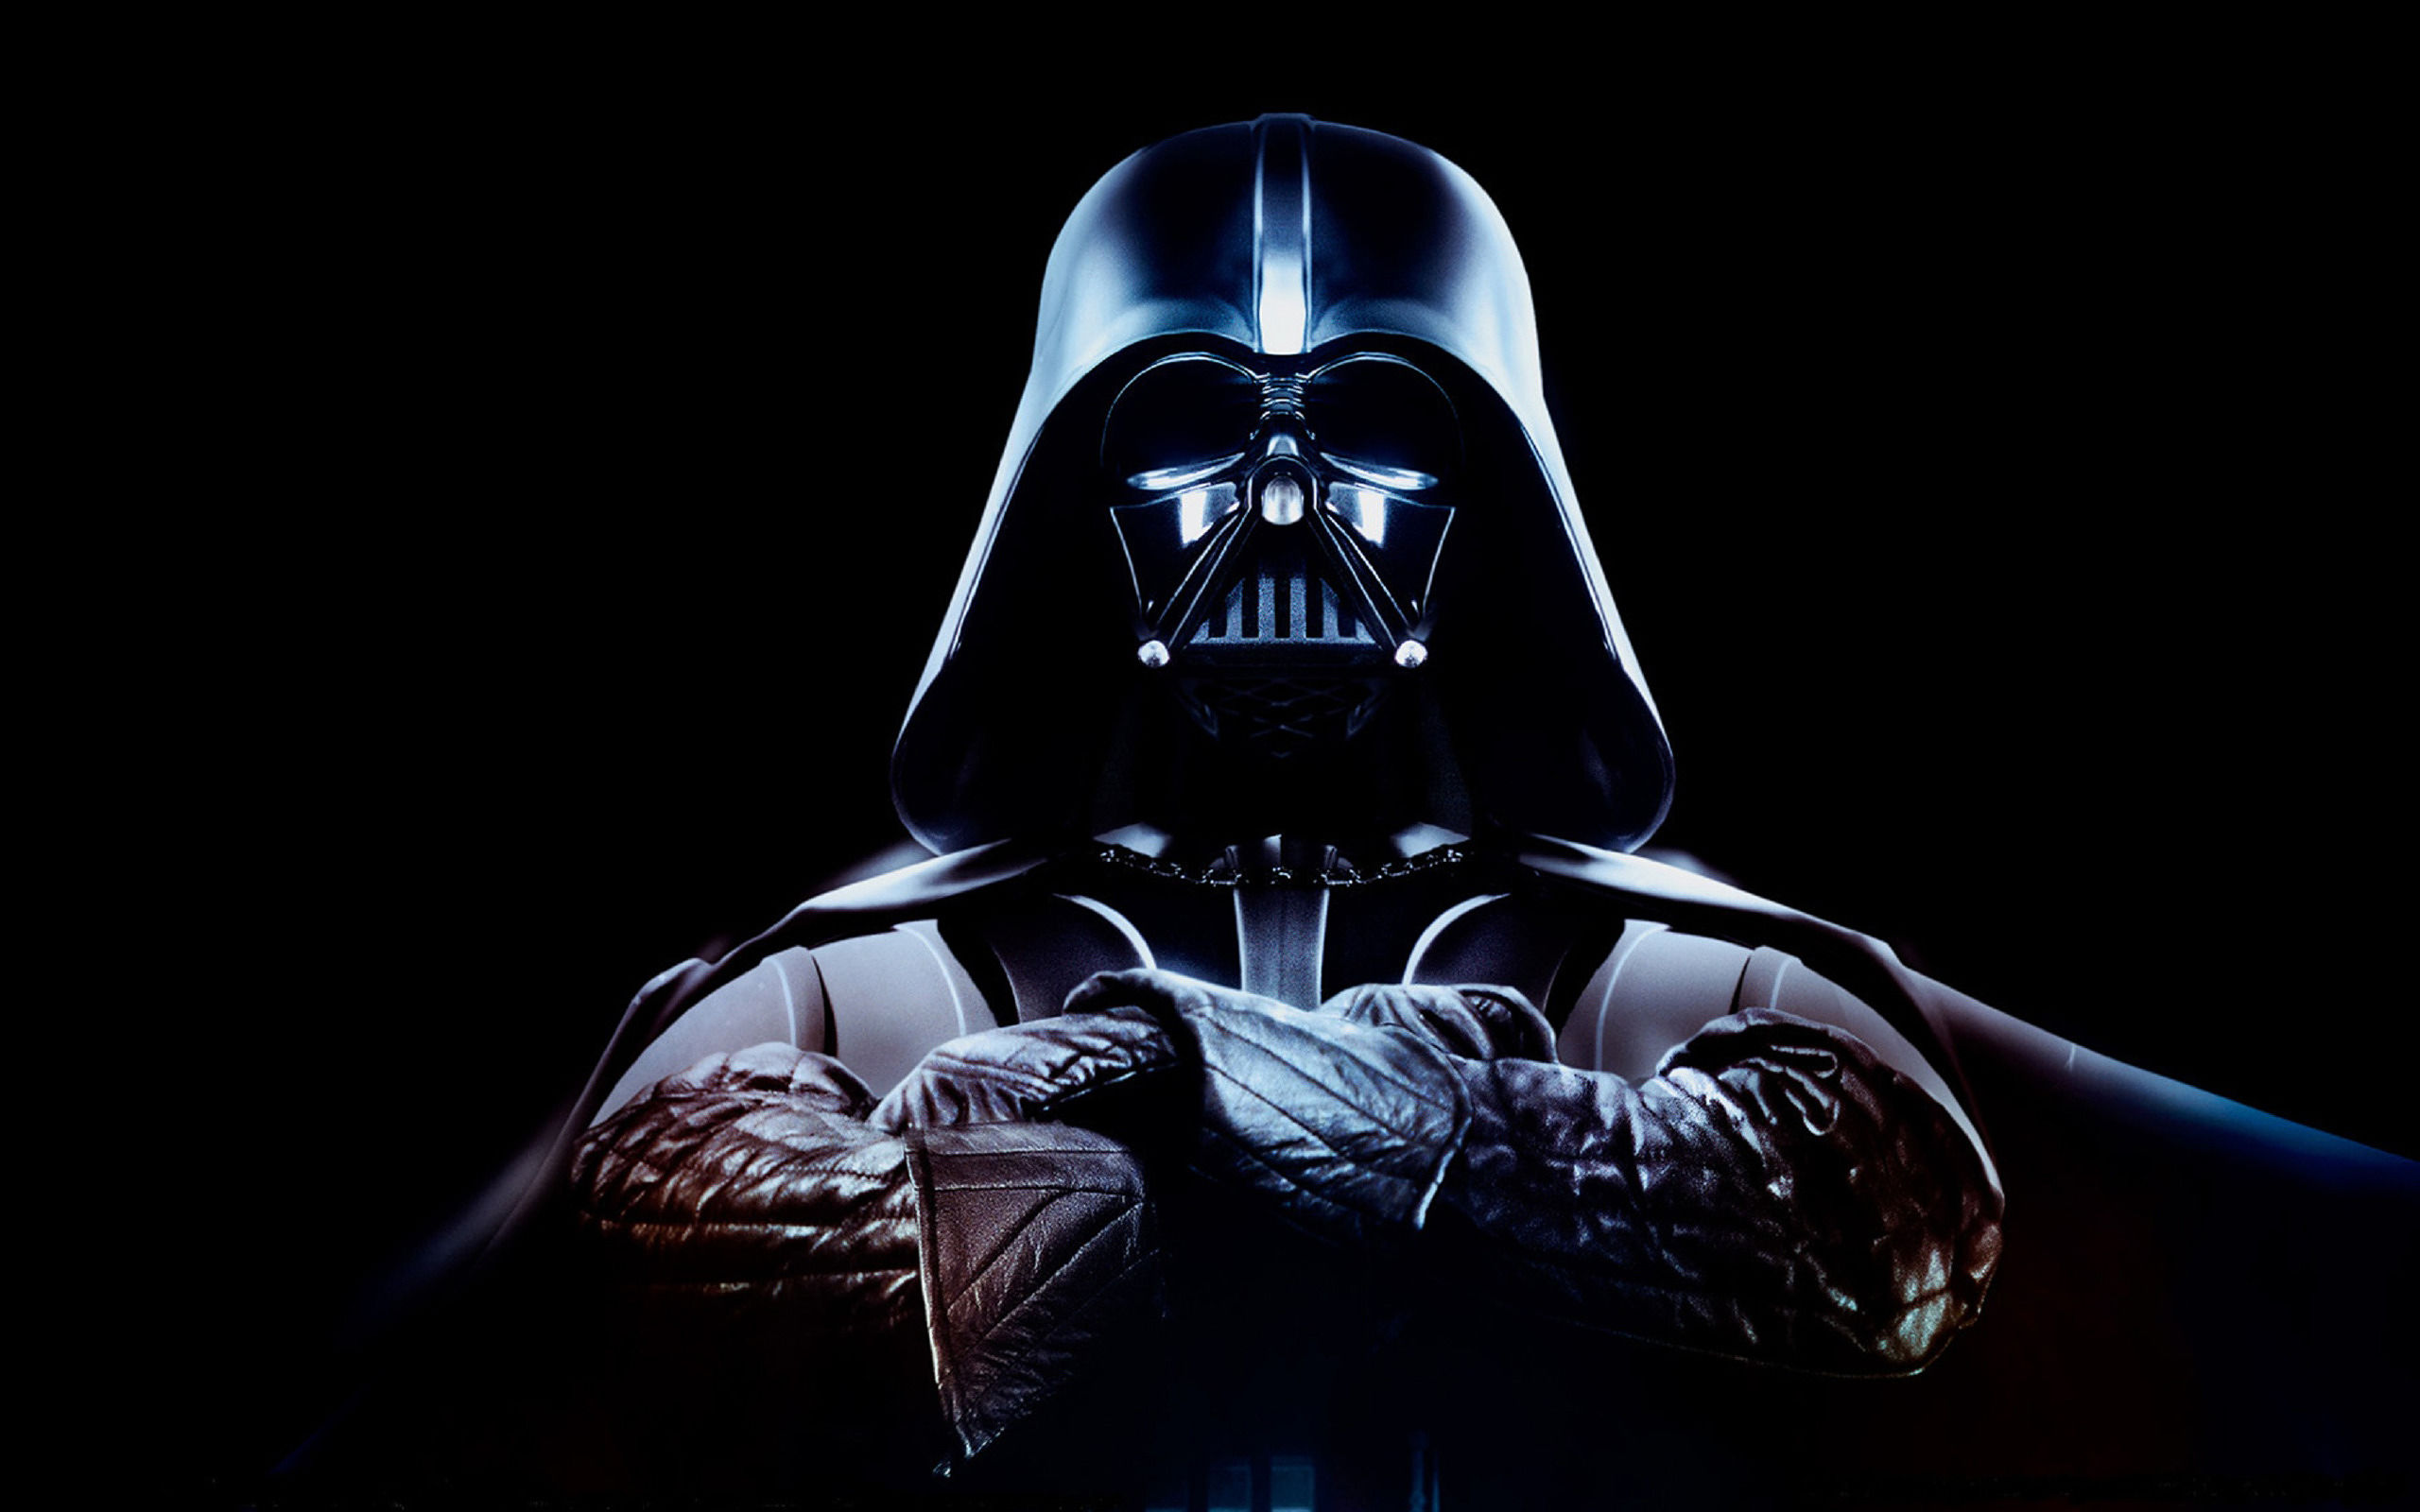 darth-vader-back-in-black-star-wars-7-darth-vader-s-past-is-even-darker-than-you-imagine-jpeg-288872